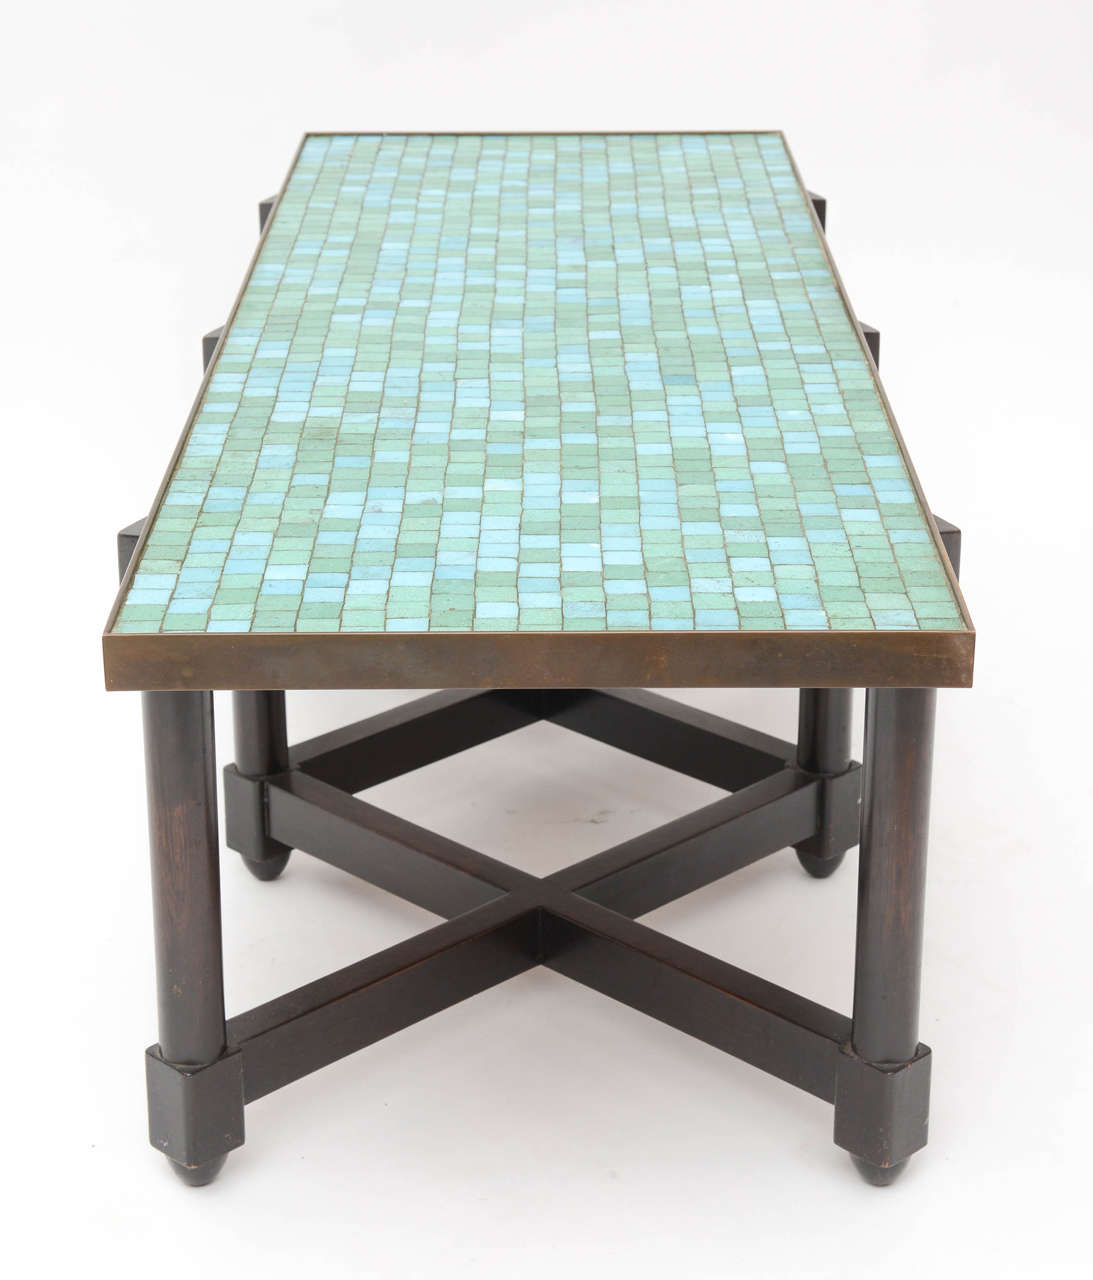 Edward Wormley Tile Top Campaign Coffee Table In Excellent Condition For Sale In West Palm Beach, FL